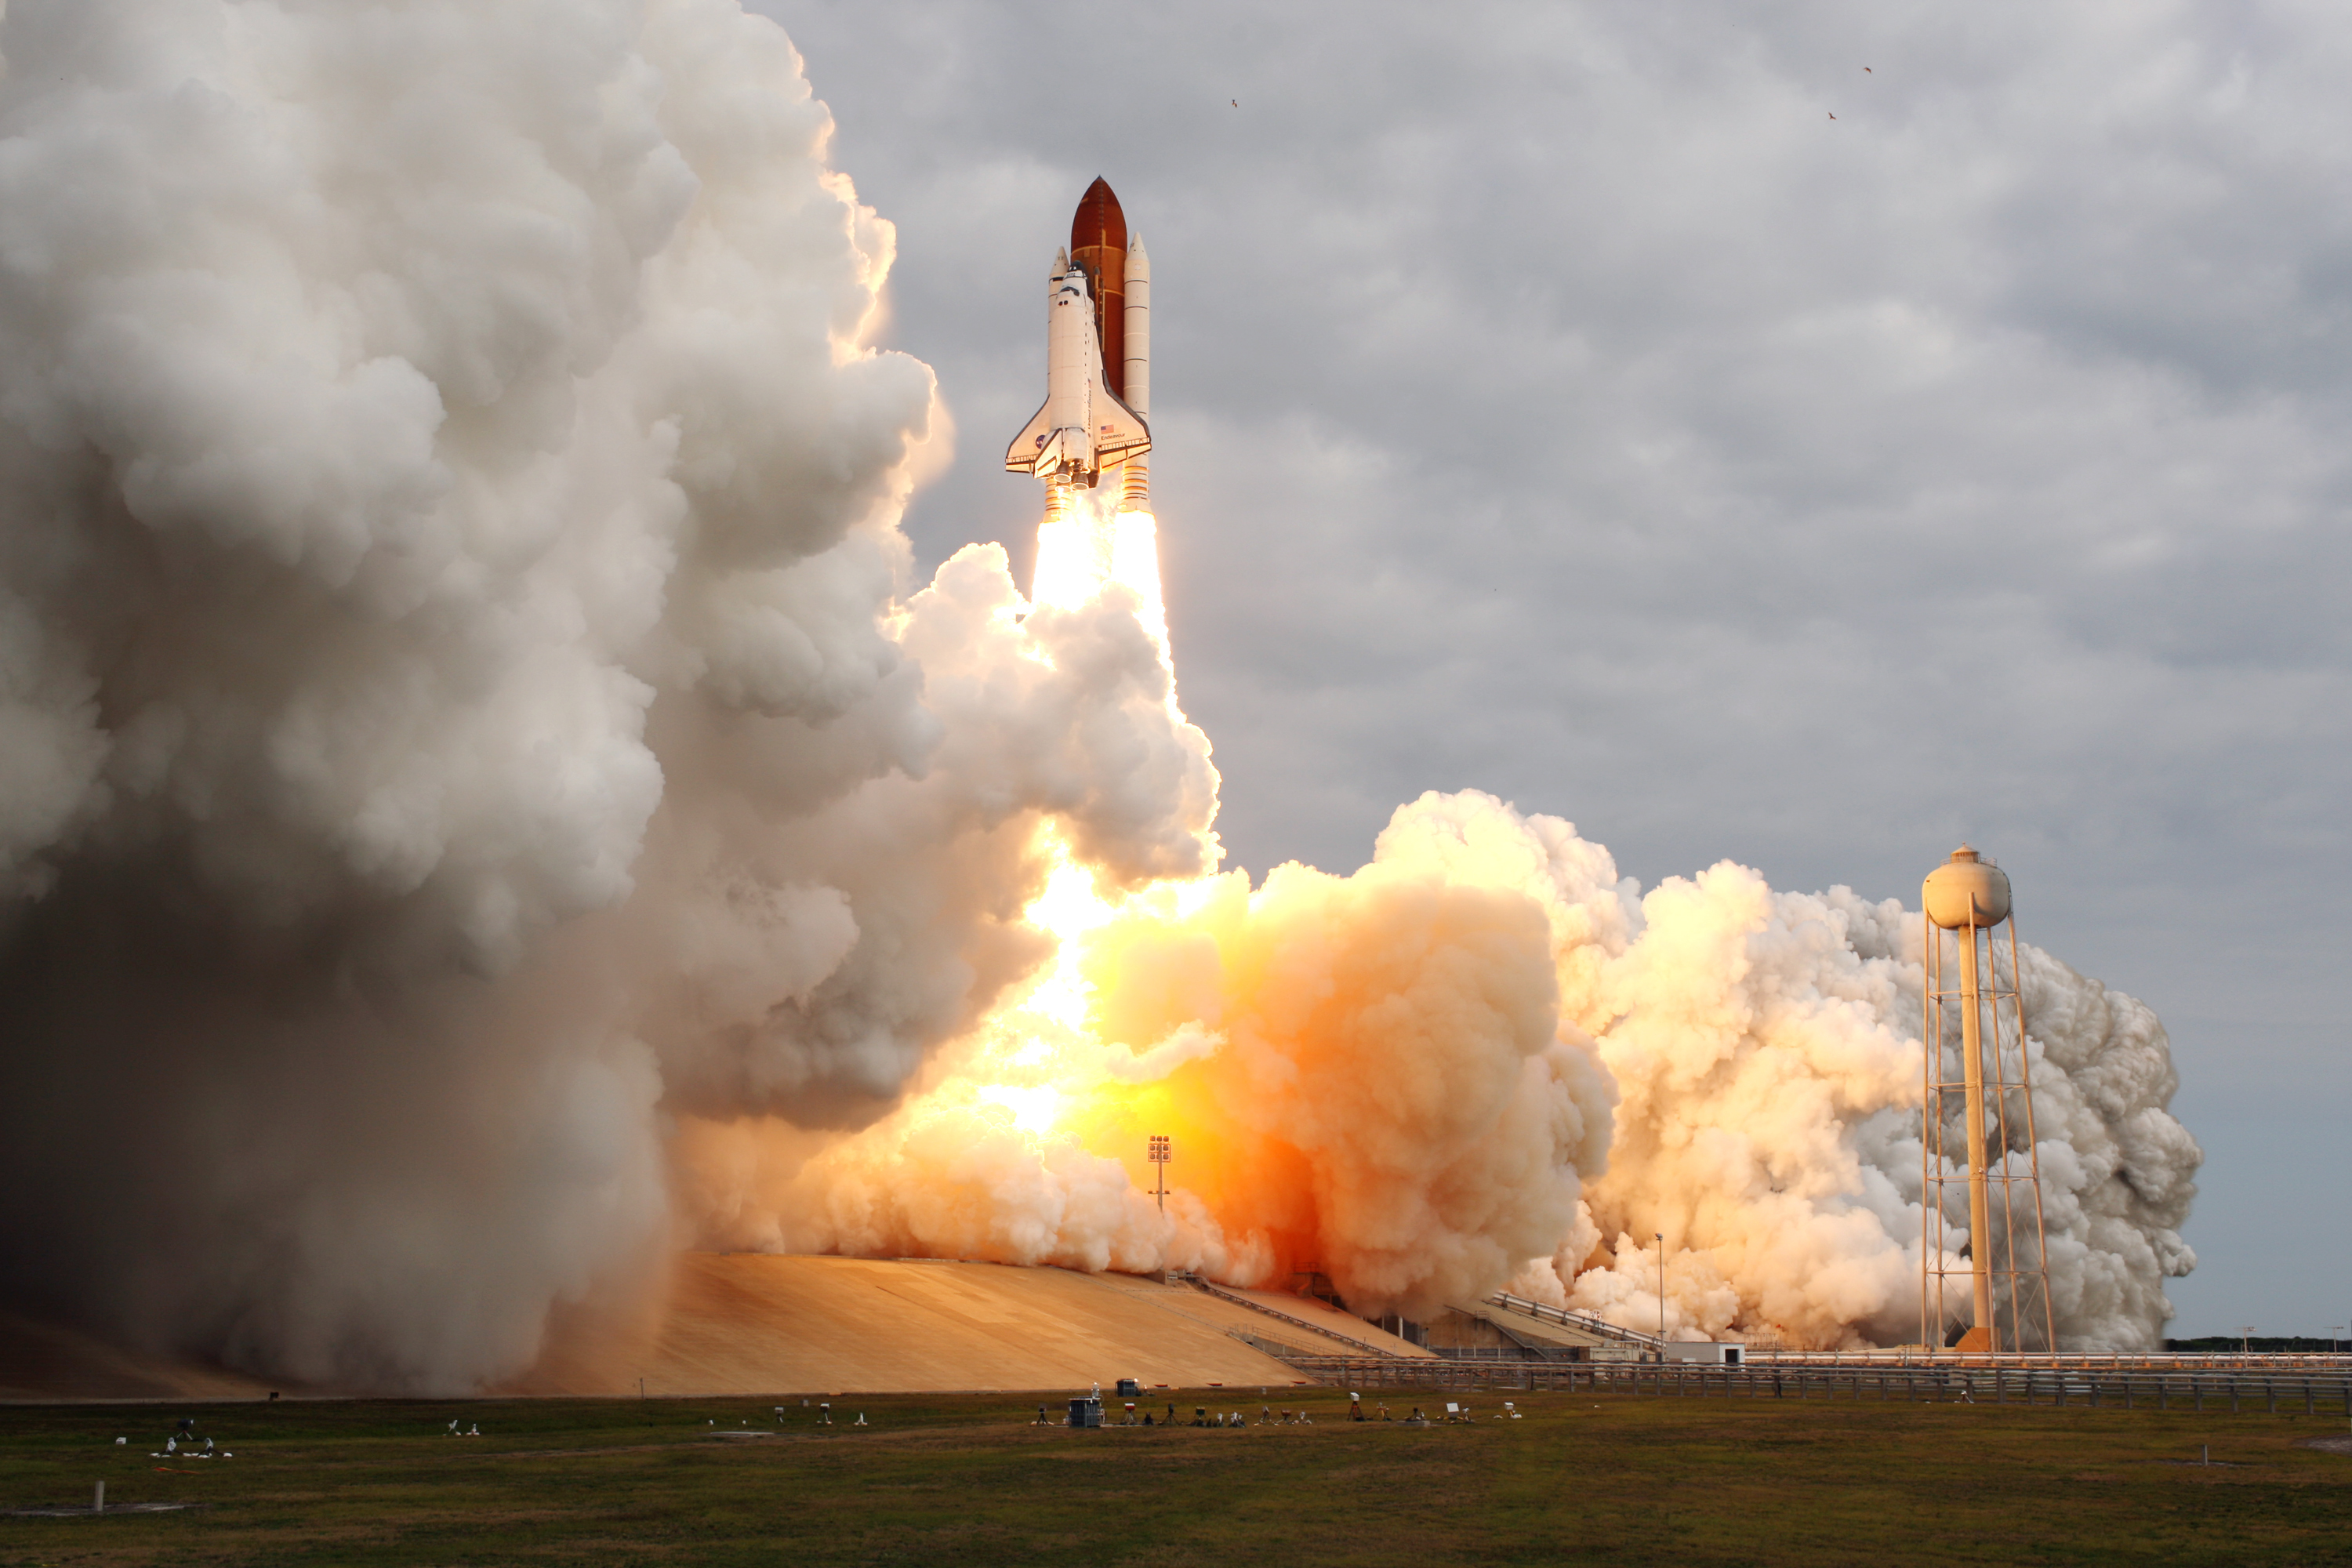 APOD: 2011 May 18 - The Last Launch of Space Shuttle Endeavour